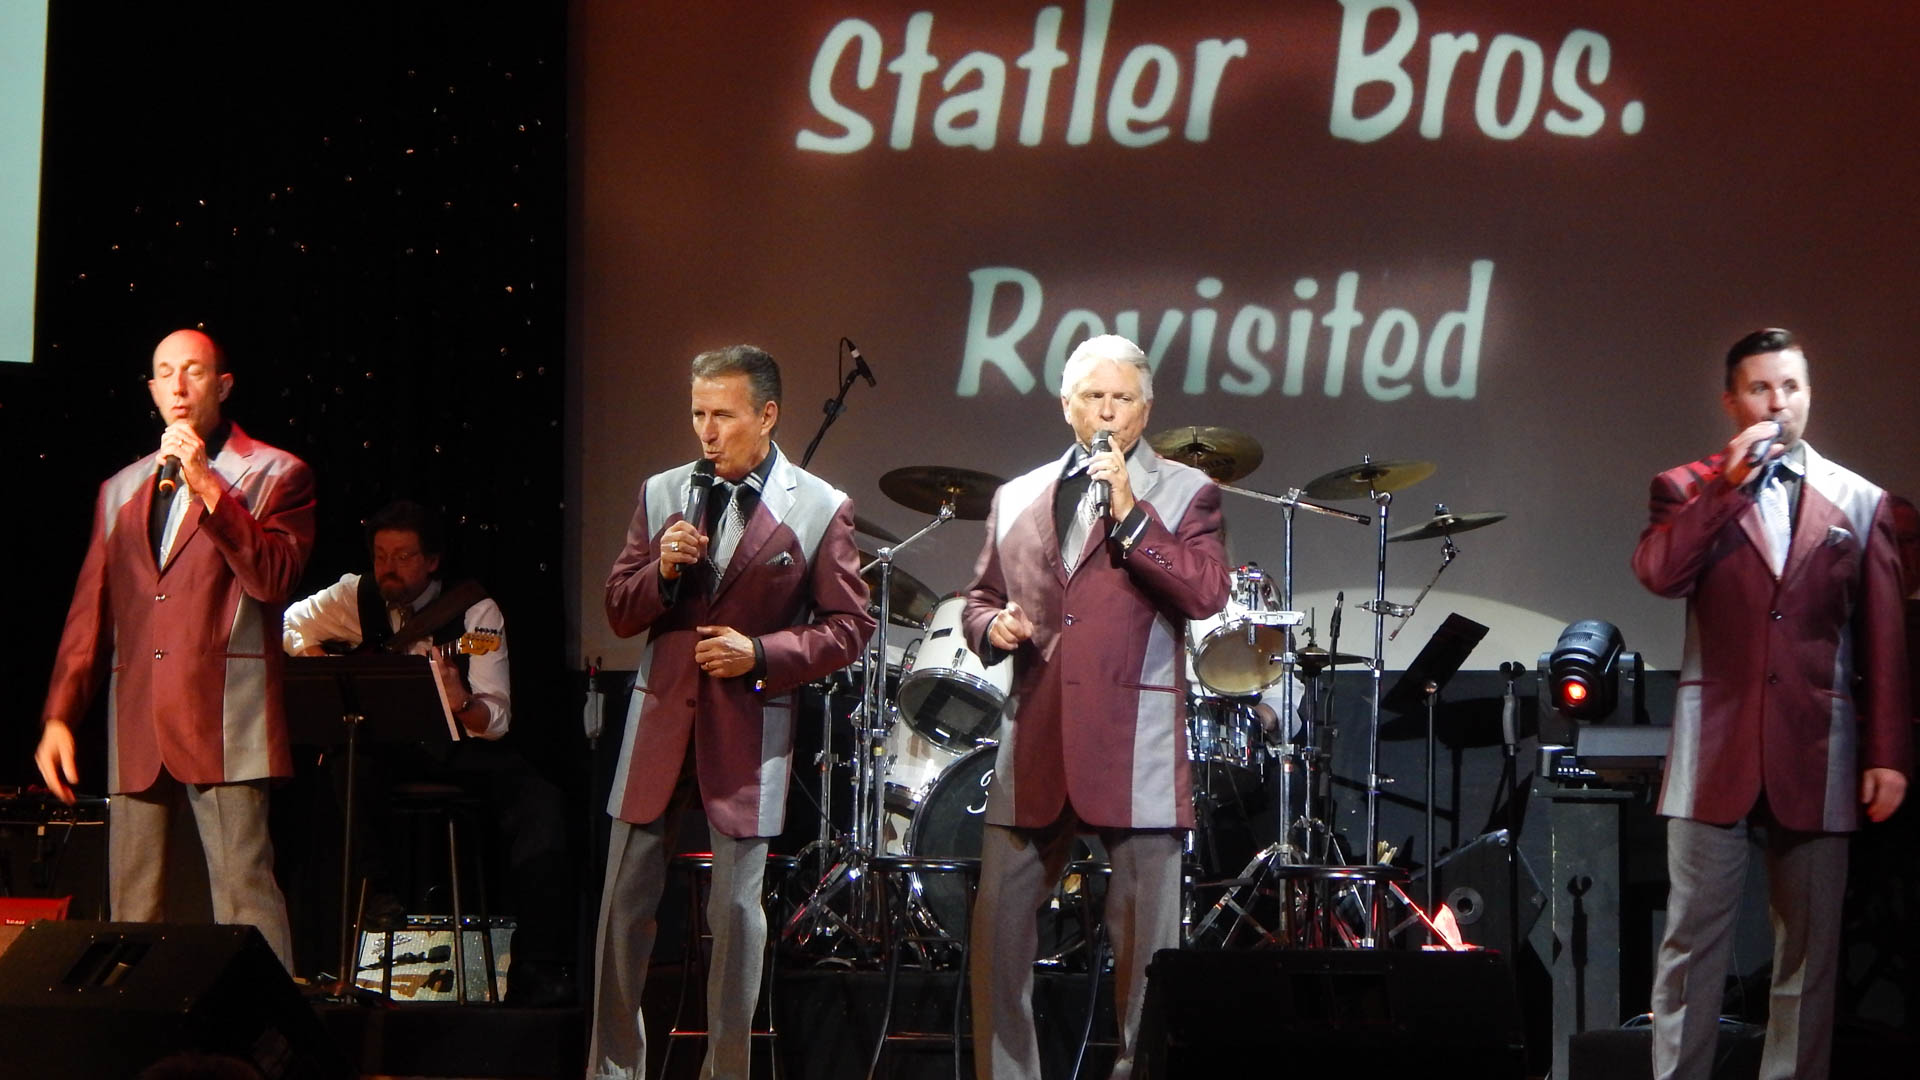 190505 Statler Brothers Revisited Gro - Hear those Statler Brothers hit songs at the God and Country Theatre